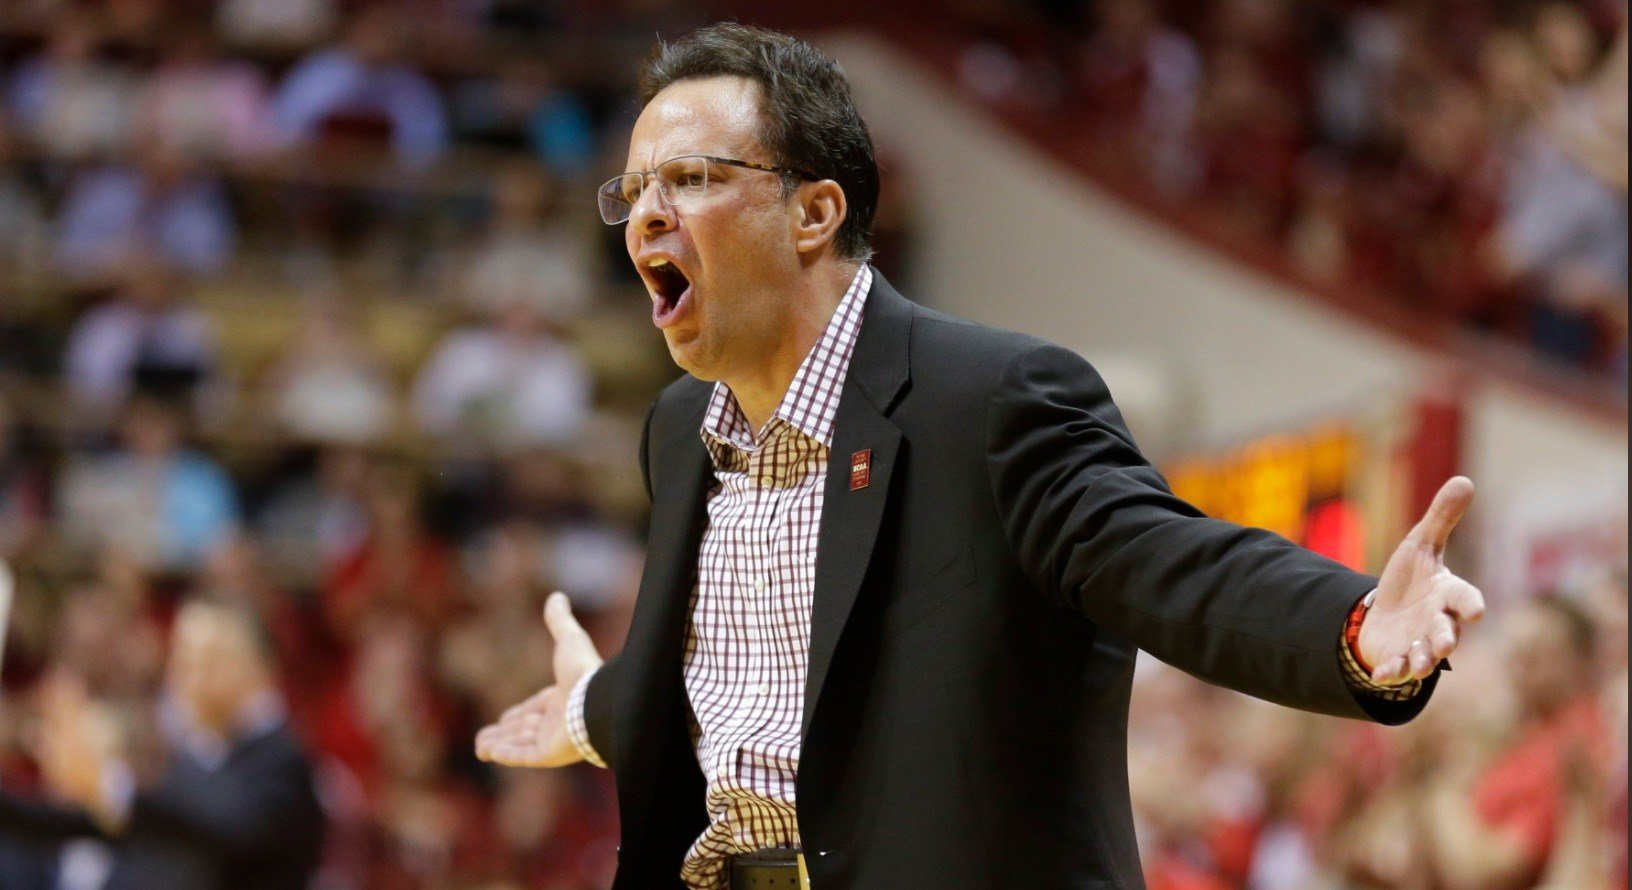 Despite wins against Kansas and North Carolina, Tom Crean's Indiana team is no lock for the NCAA Tournament.